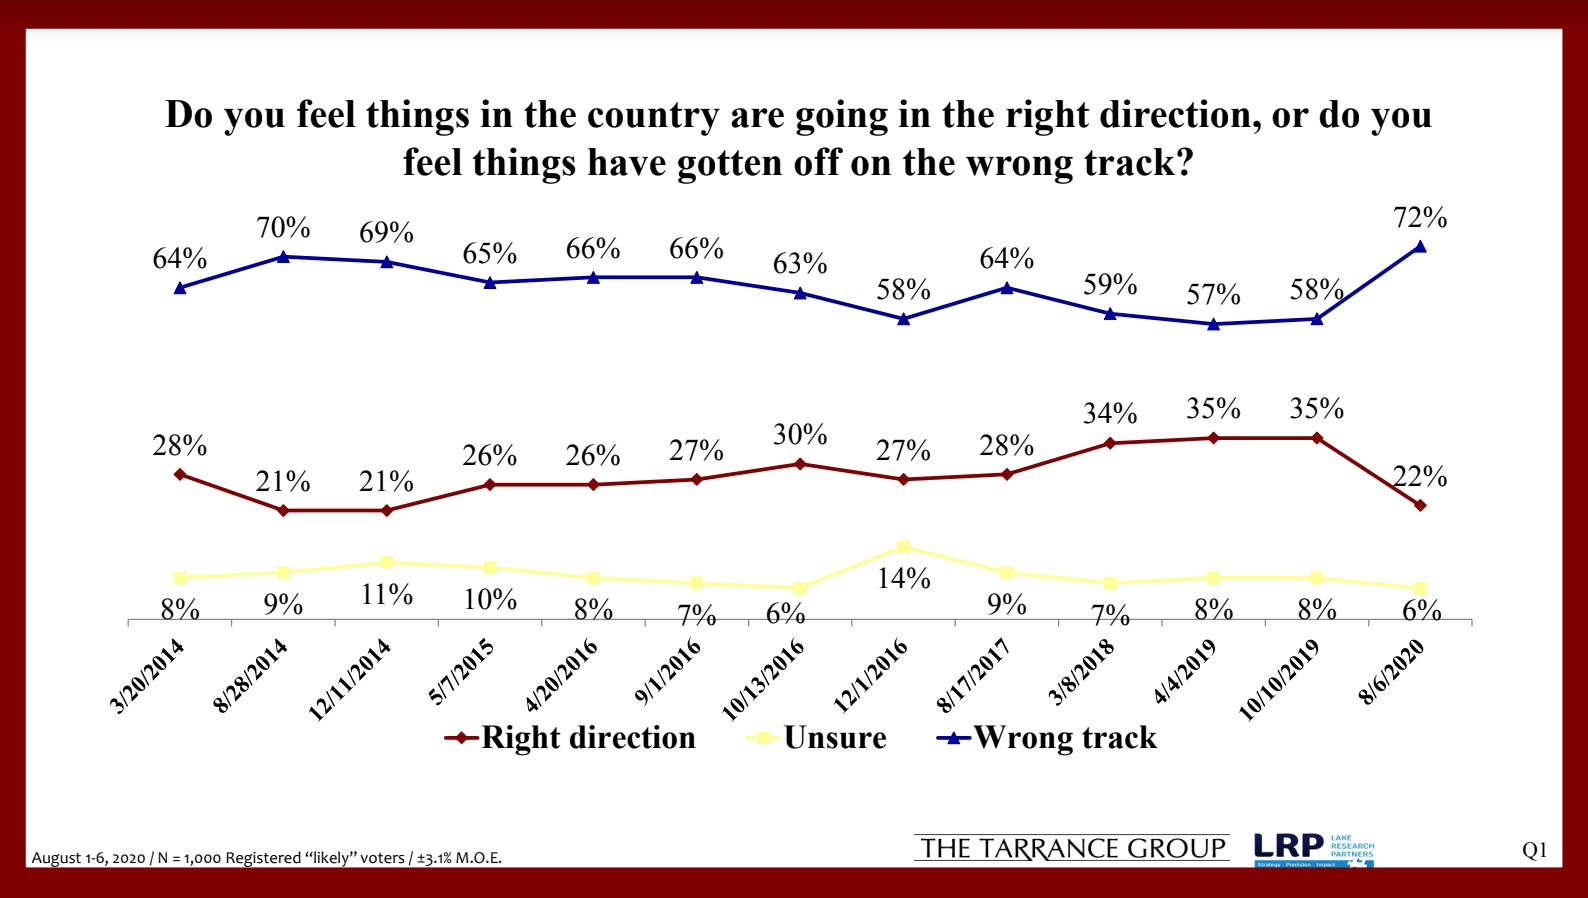 Right direction/wrong direction poll